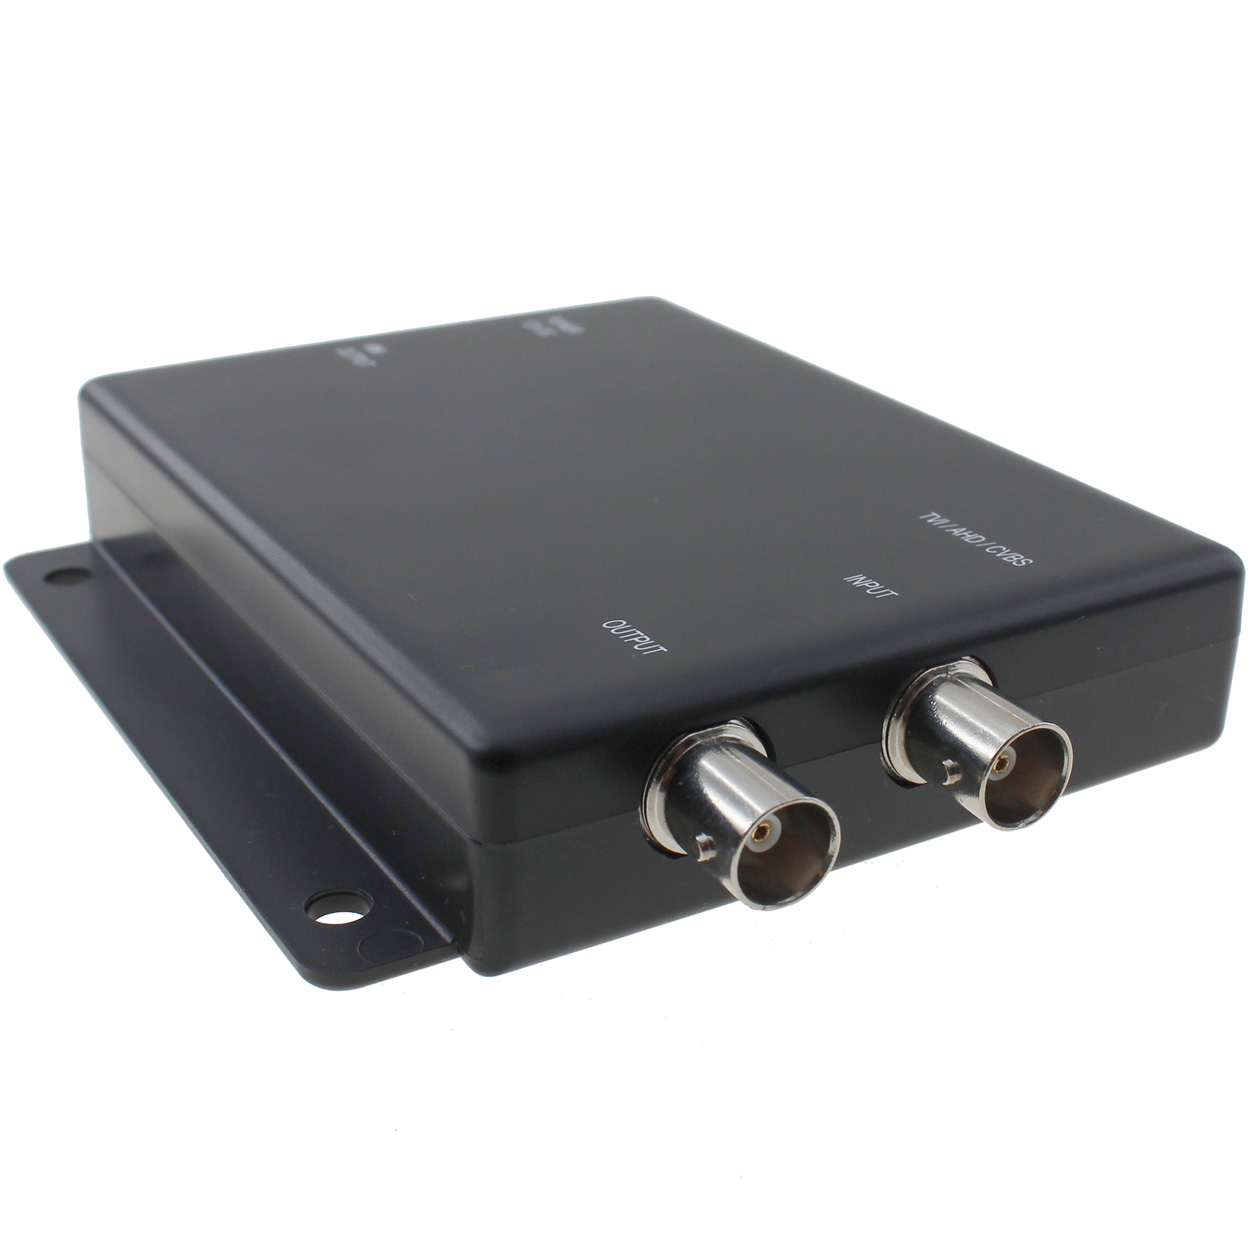 HD-TVI / AHD / CVBS to HDMI Converter with Video Loopout Function